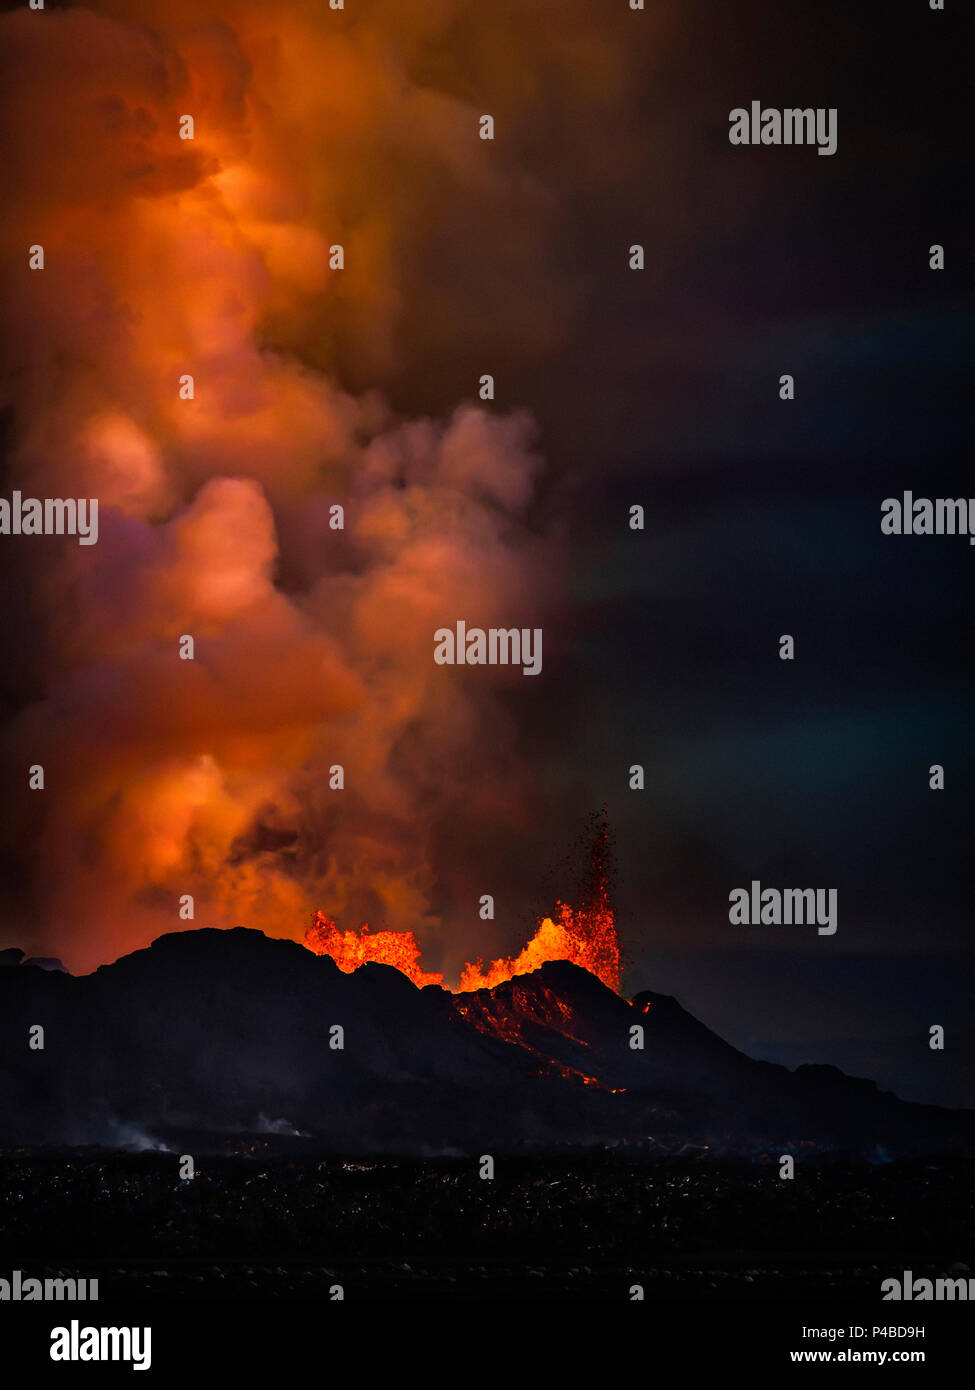 Lava and plumes from the Holuhraun Fissure by the Bardarbunga Volcano, Iceland. August 29, 2014 a fissure eruption started in Holuhraun at the northern end of a magma intrusion, which had moved progressively north, from the Bardarbunga volcano. Bardarbunga is a stratovolcano located under Vatnajokull, Iceland's most extensive glacier. Picture Date: Sept, 20, 2014 - Stock Image